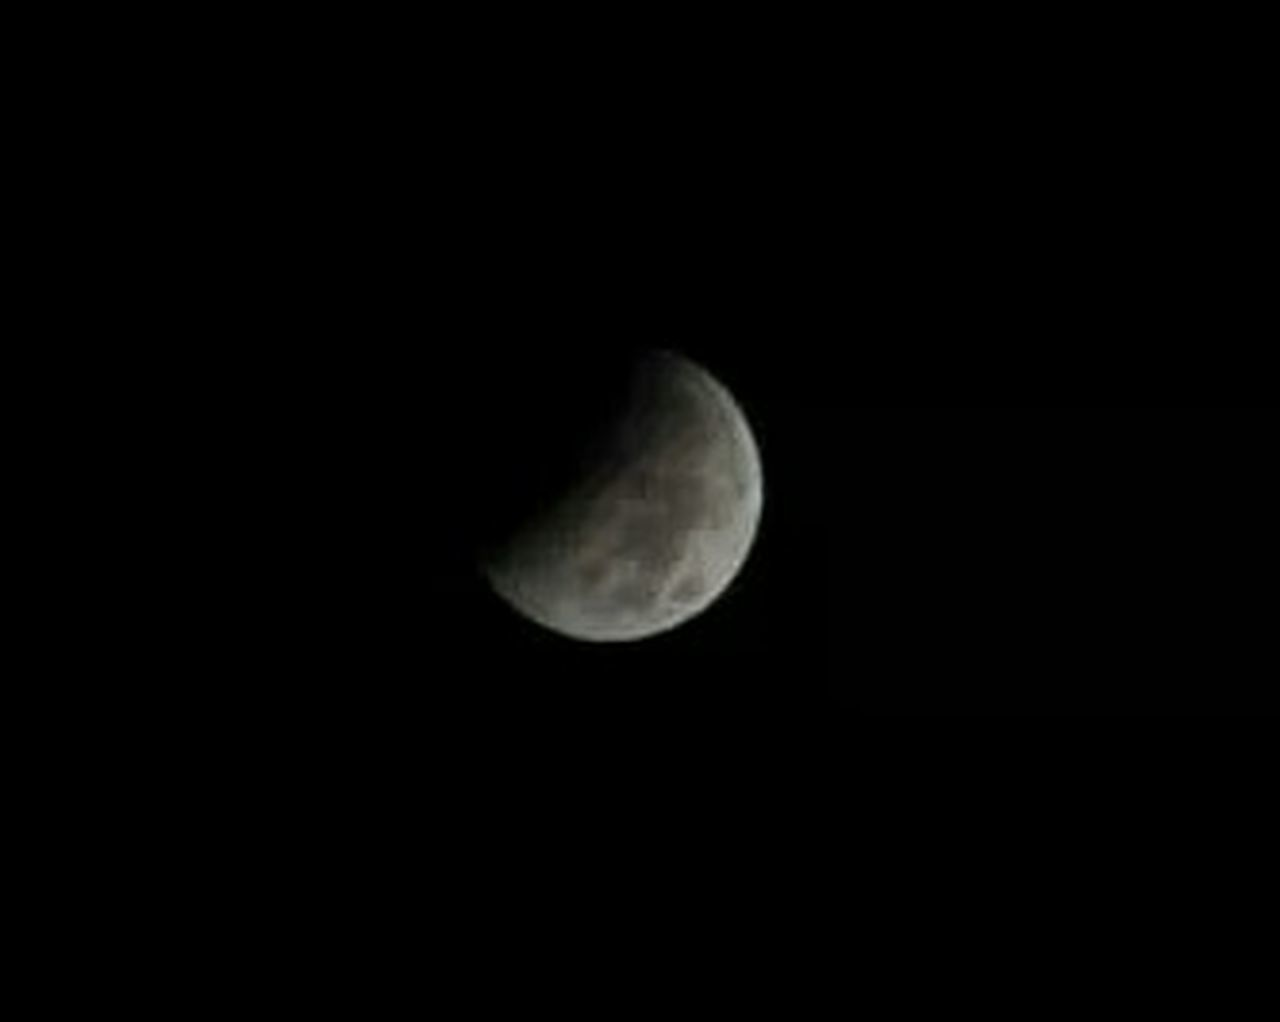 astronomy, moon, night, dark, copy space, moon surface, beauty in nature, tranquil scene, nature, no people, tranquility, space, low angle view, outdoors, sky, scenics, half moon, close-up